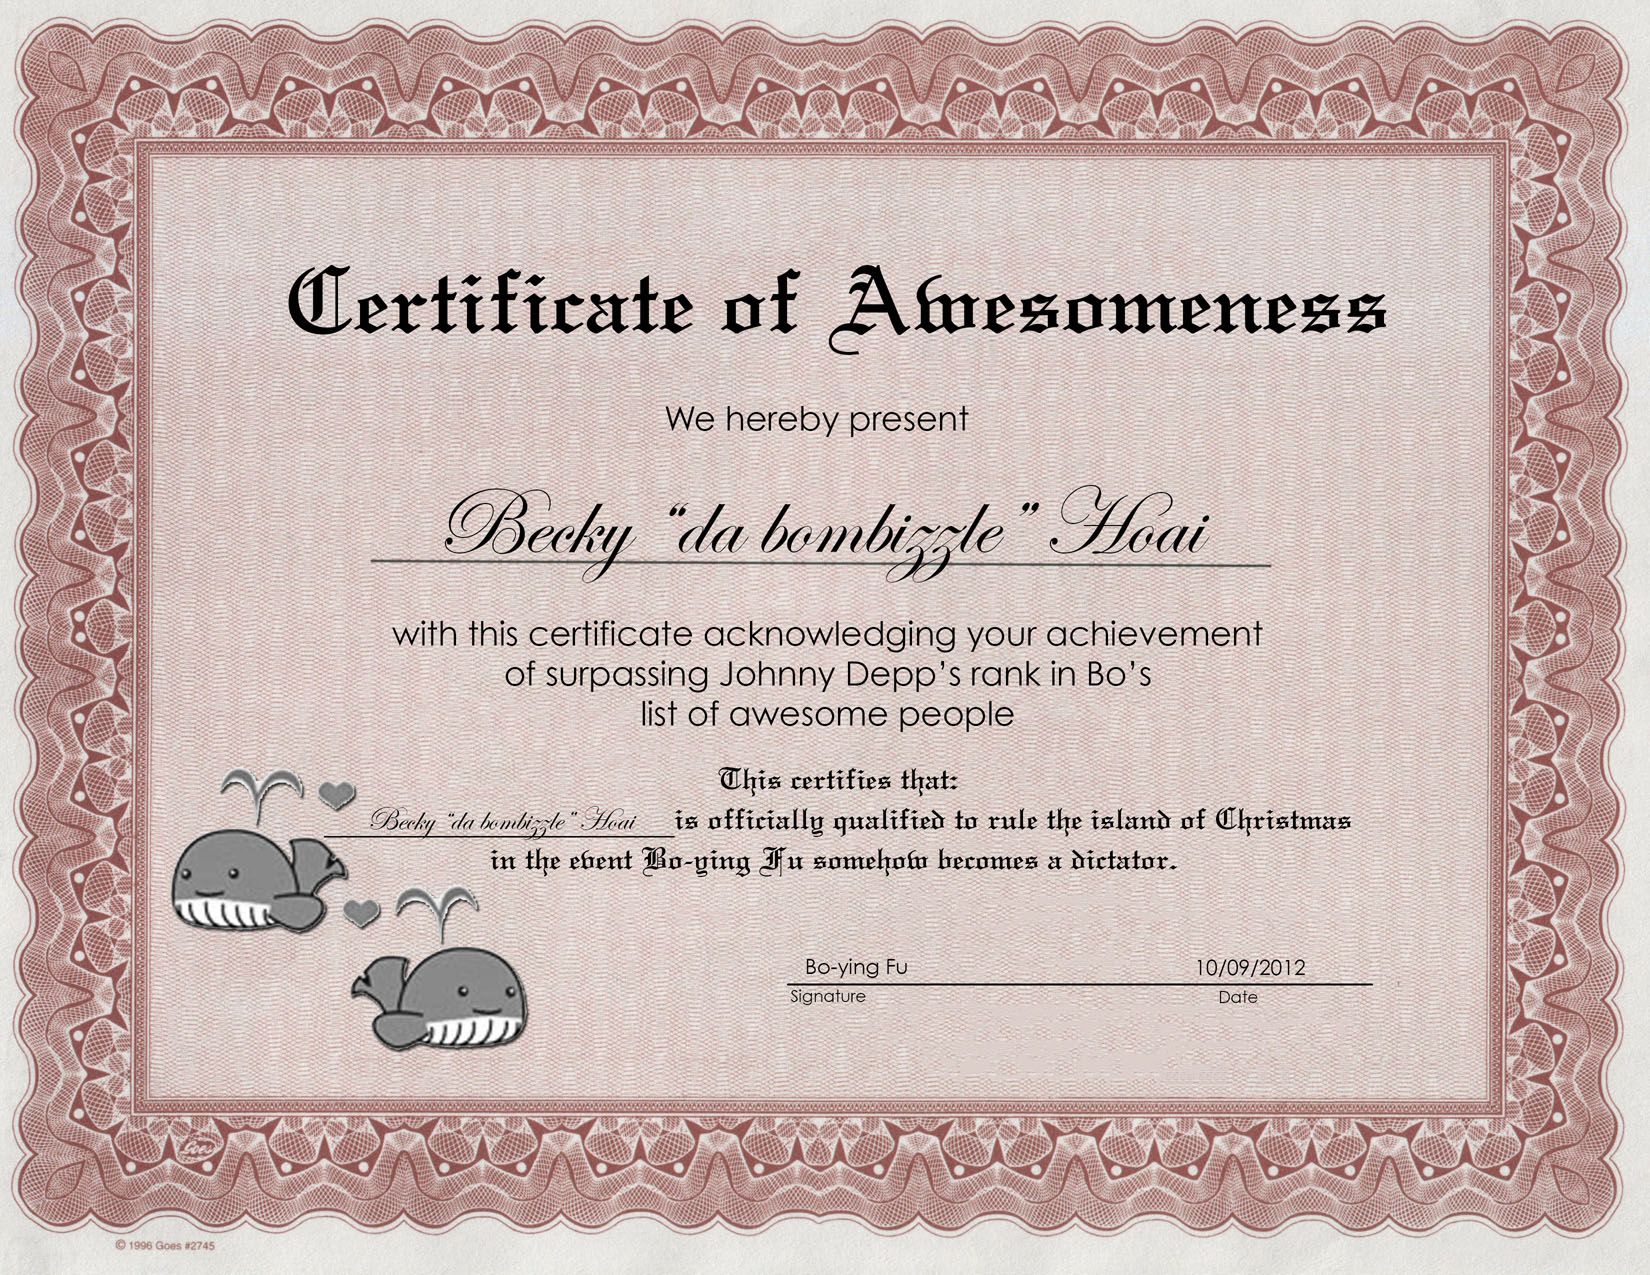 Certificate of Awesomeness Sample